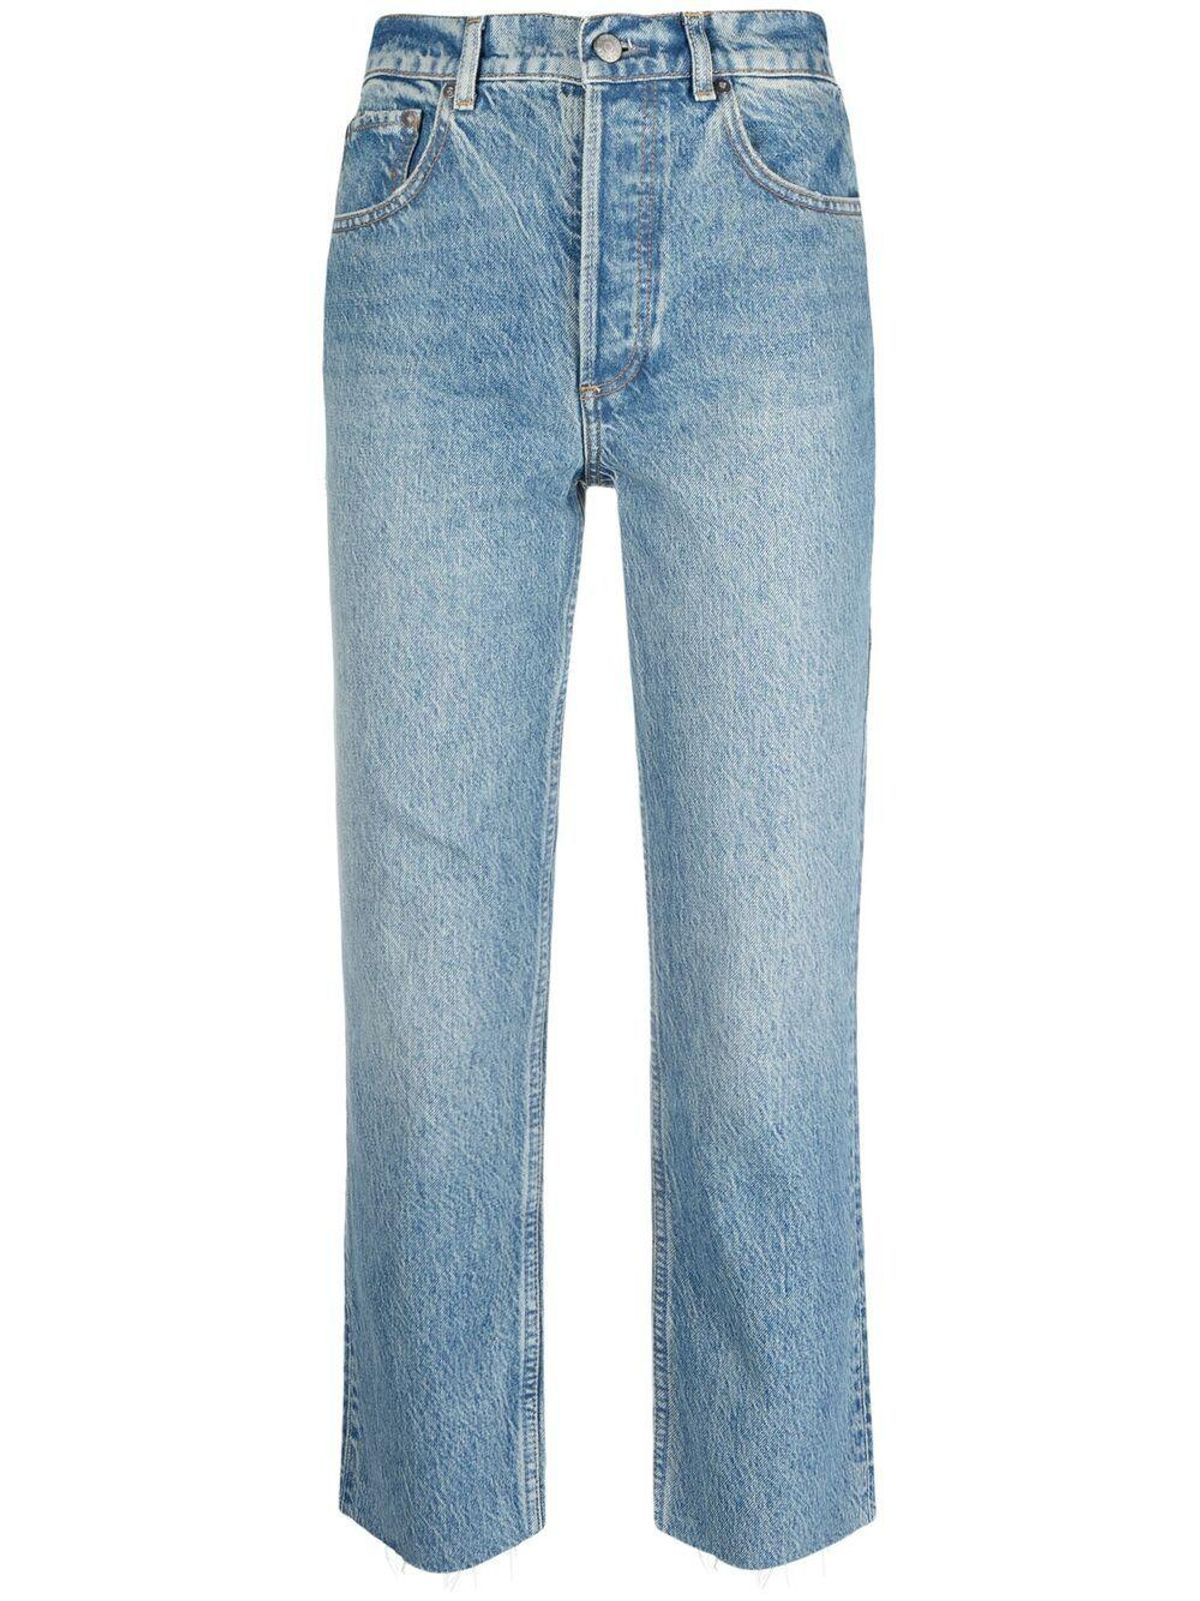 Darcy Pop Cropped Jeans